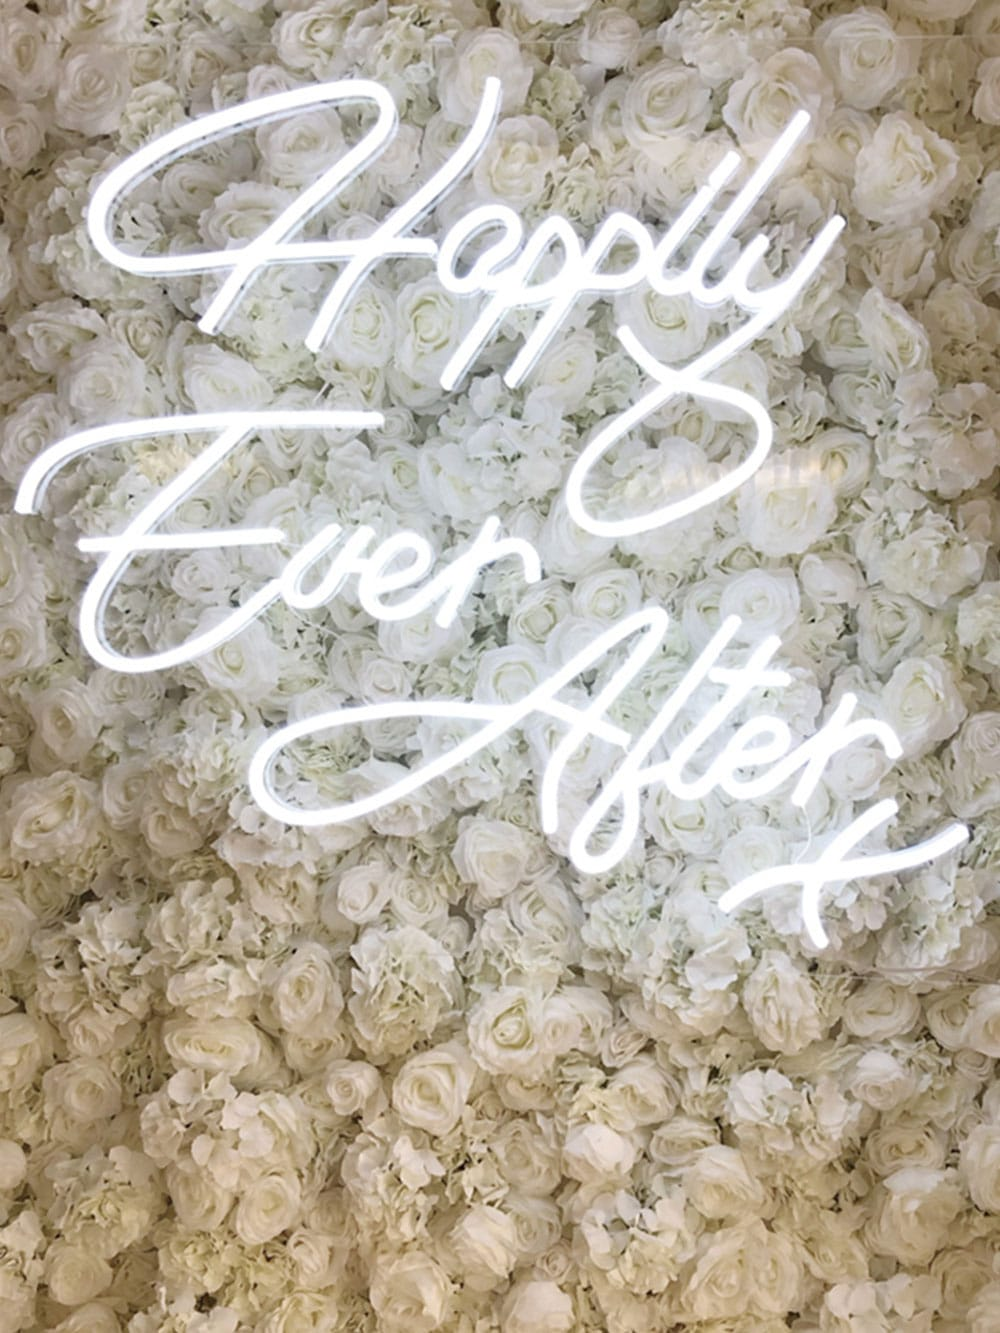 Happily Ever After Neon Sign Hire Hertfordshire